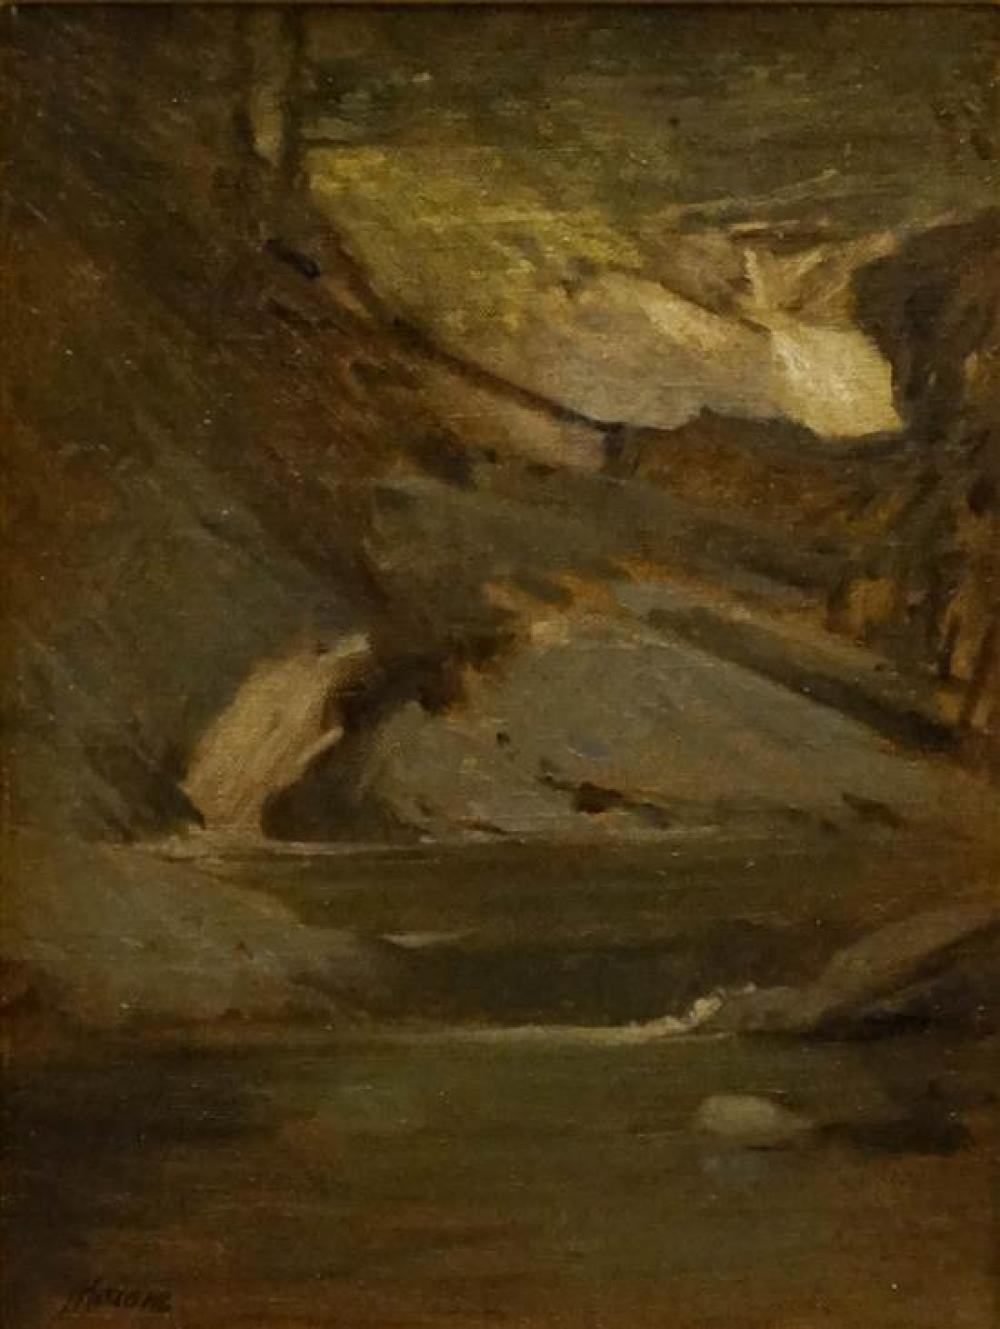 Robert Mainoe (American 1932-1987), Rocky Stream, Oil on Canvas, Painting: 12 x 9 in, Frame: 19-1/2 x 16-1/2 in